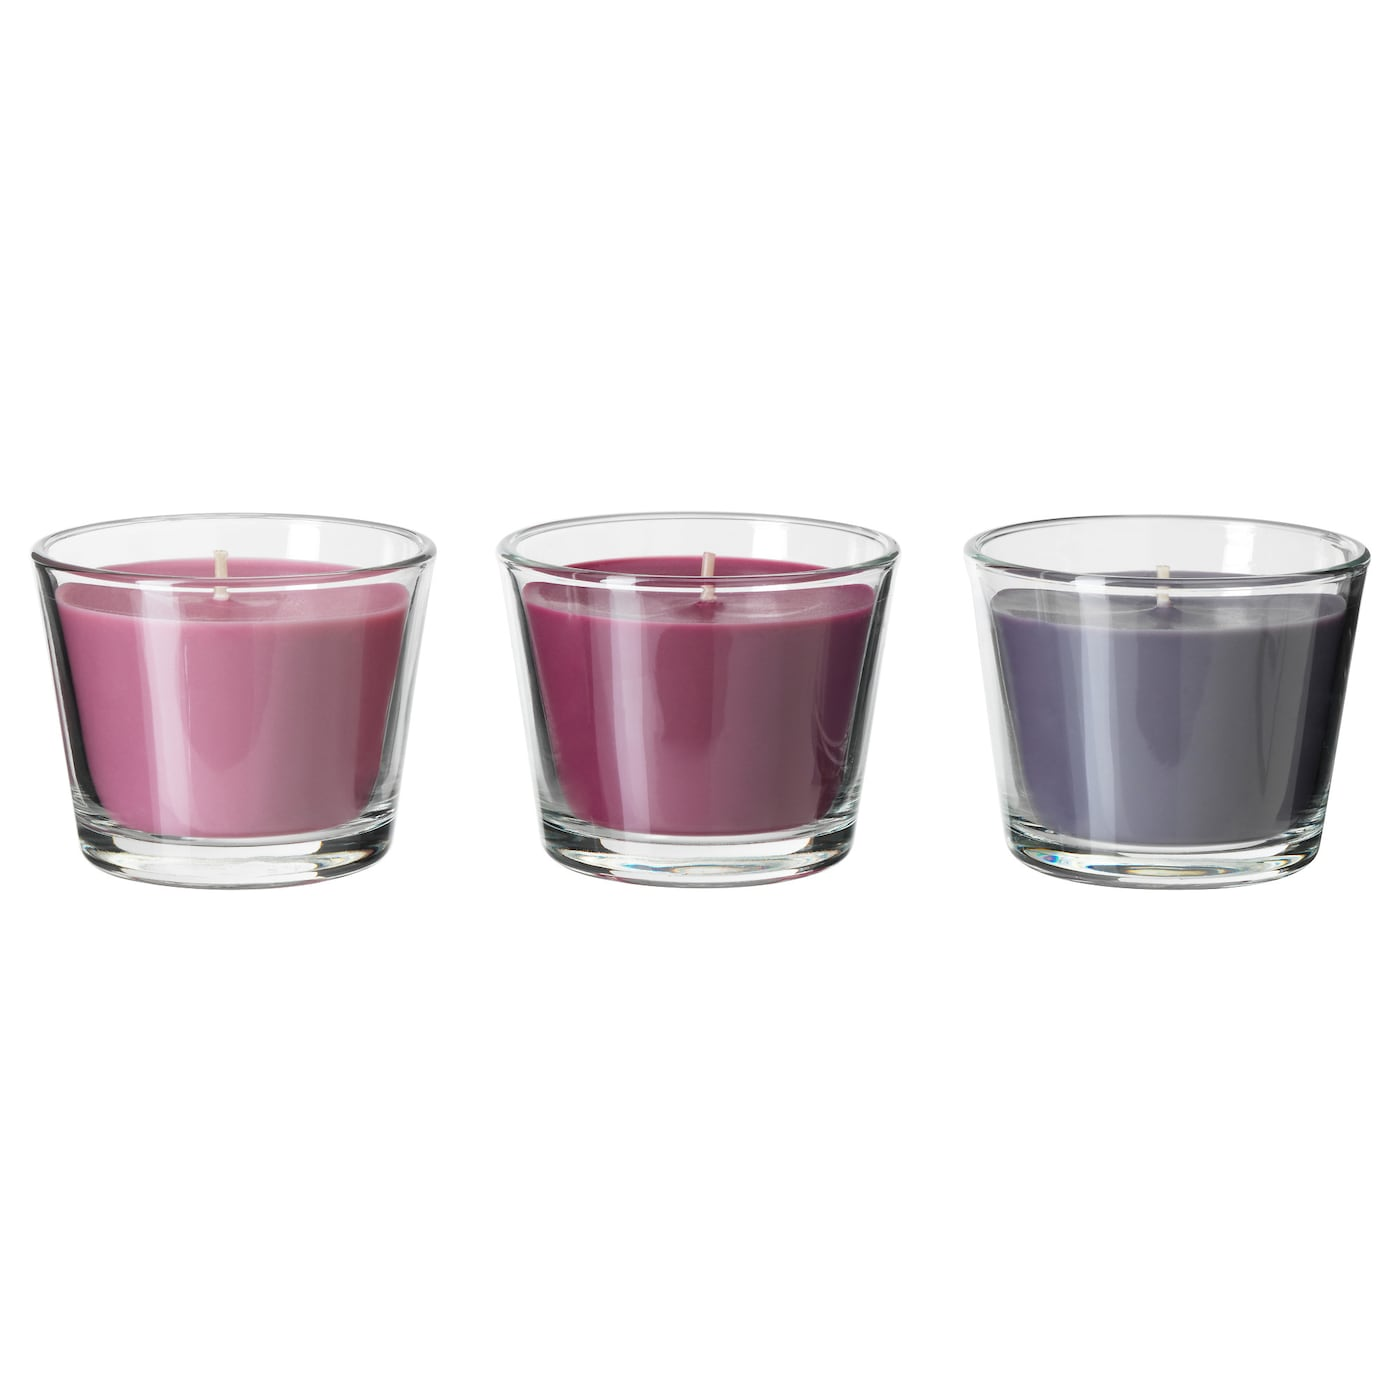 IKEA BRÄCKA scented candle in glass Sweet scent of plum with notes of caramel and vanilla.